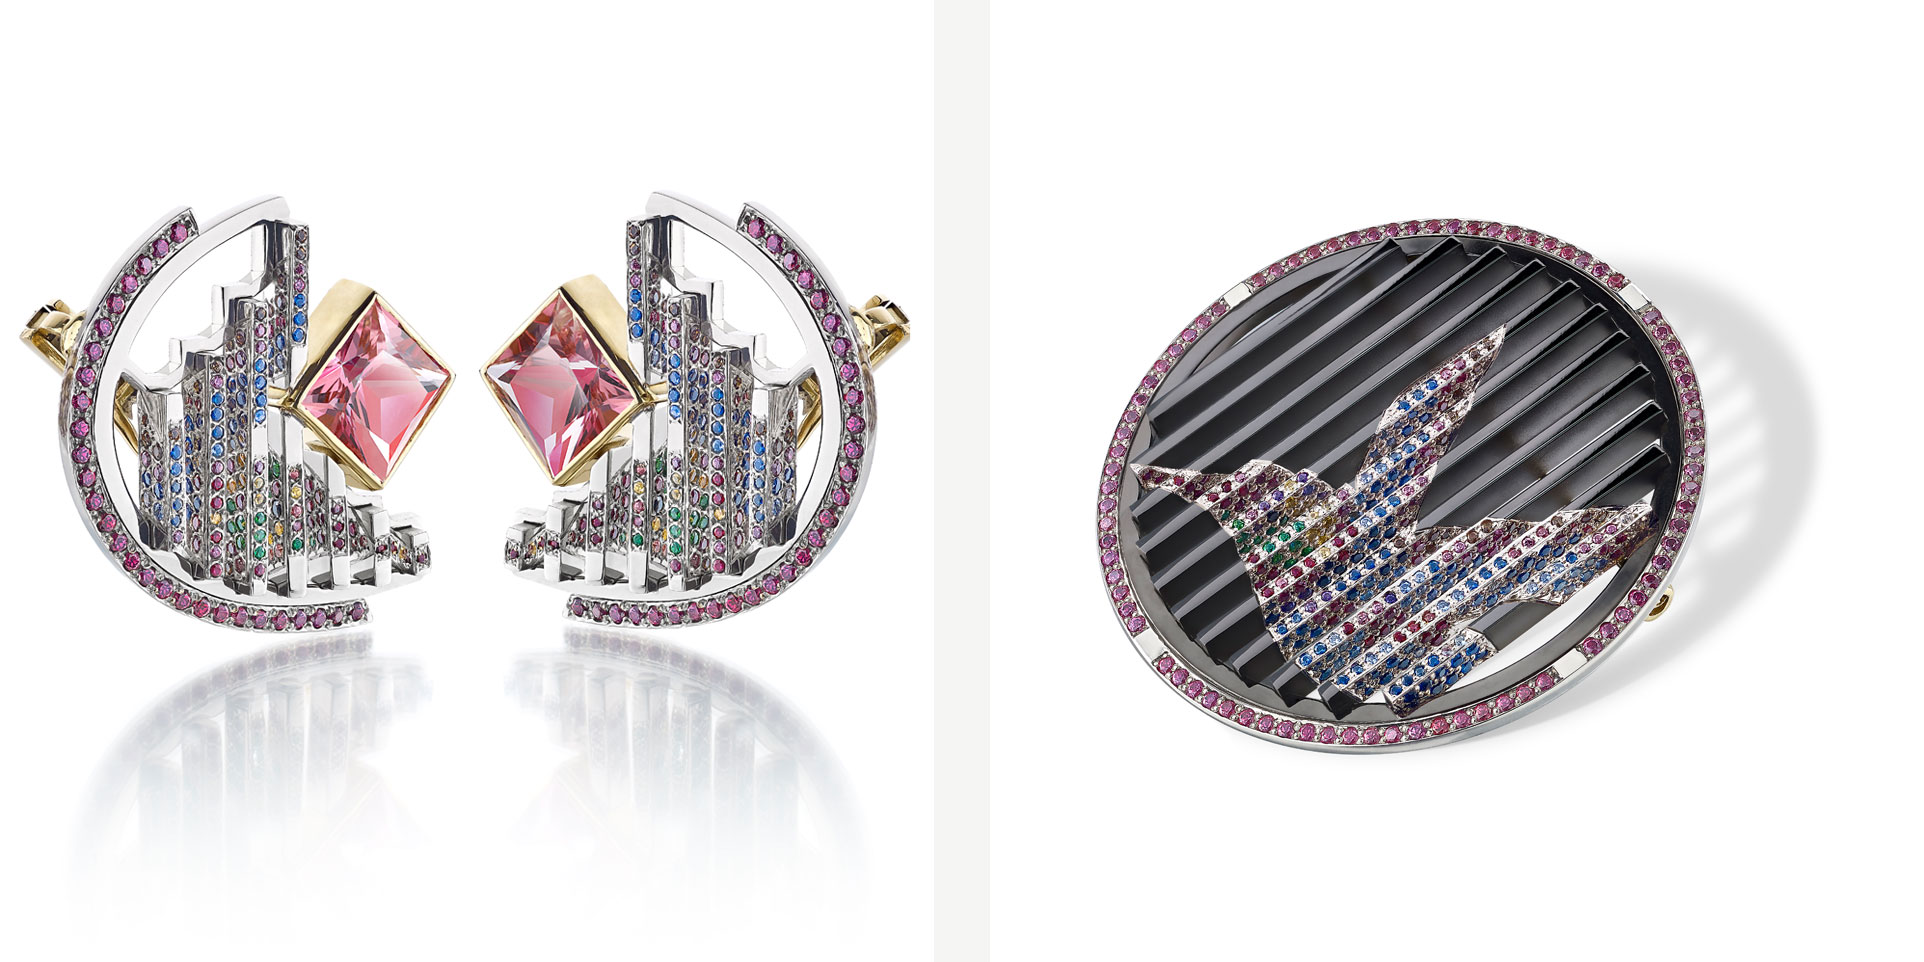 Vicky Lew Thalurania Colombica Earrings and Brooch